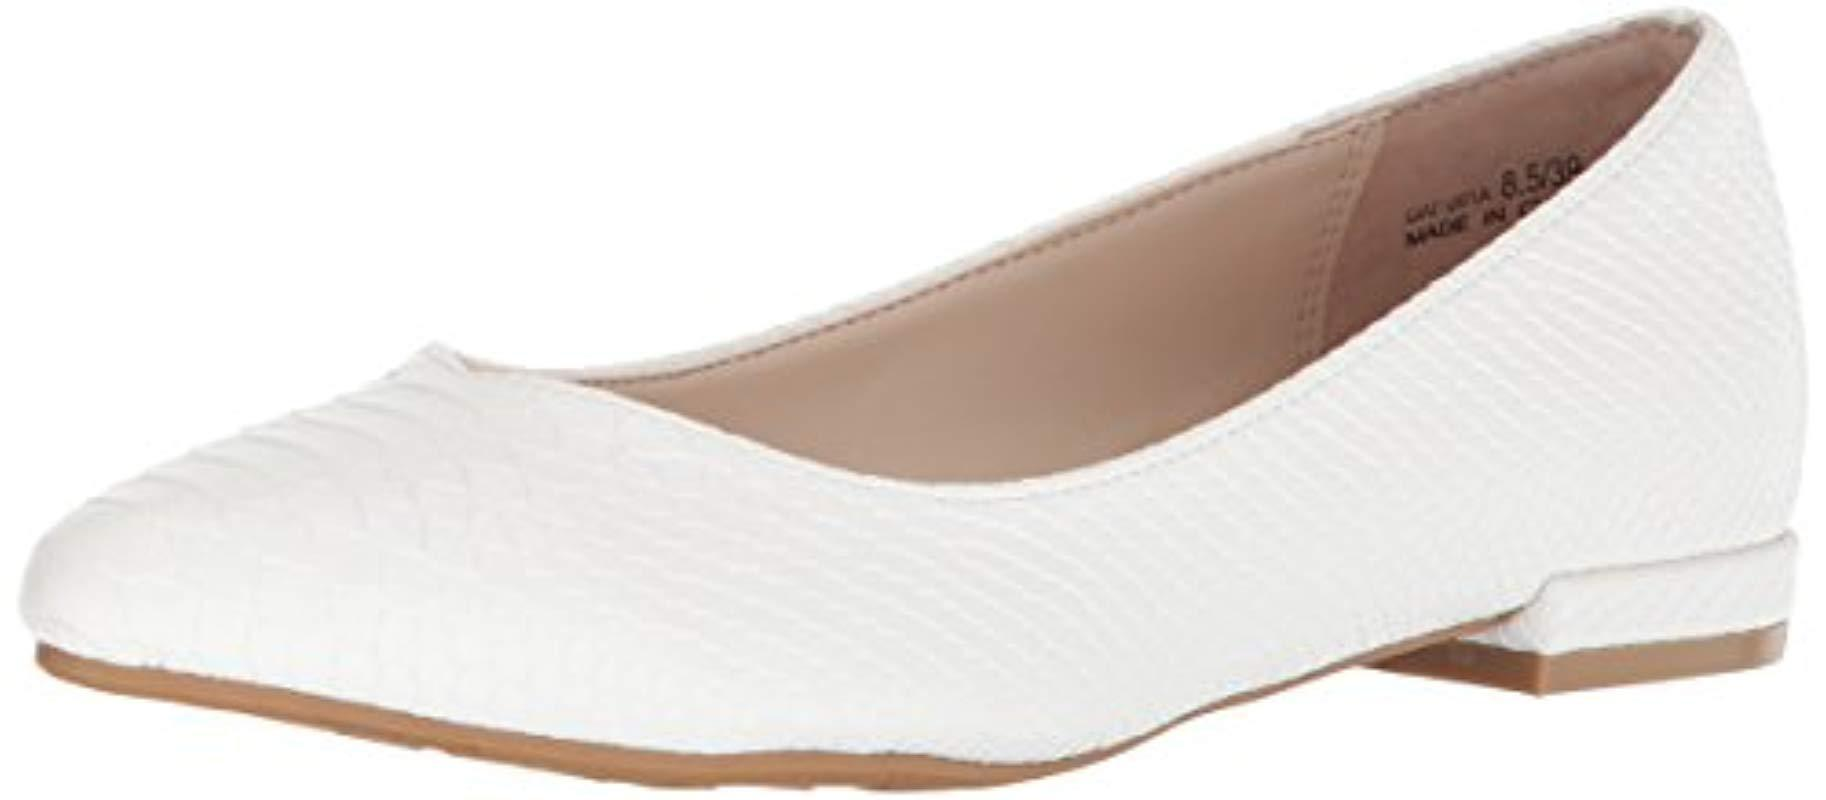 87ddc8a0f Lyst - Chinese Laundry Gavin Pointed Toe Flat in White - Save 68%